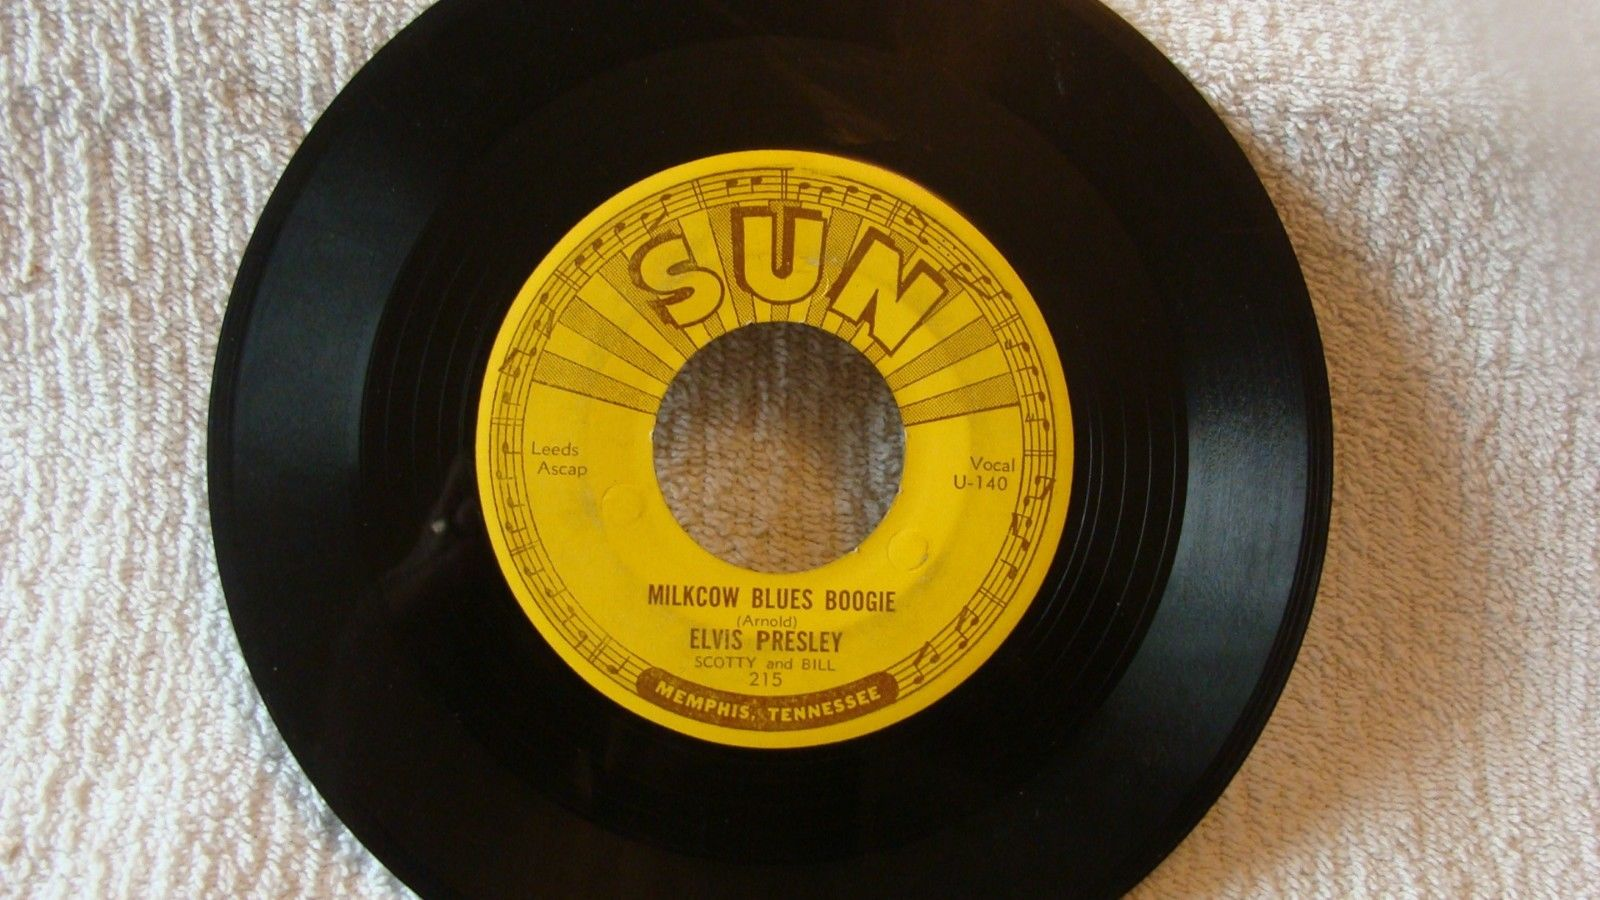 REDUCED  - ELVIS - SUN 215 - MILKCOW BLUES BOOGIE -  1955 ROCKABILLY -  45 RPM